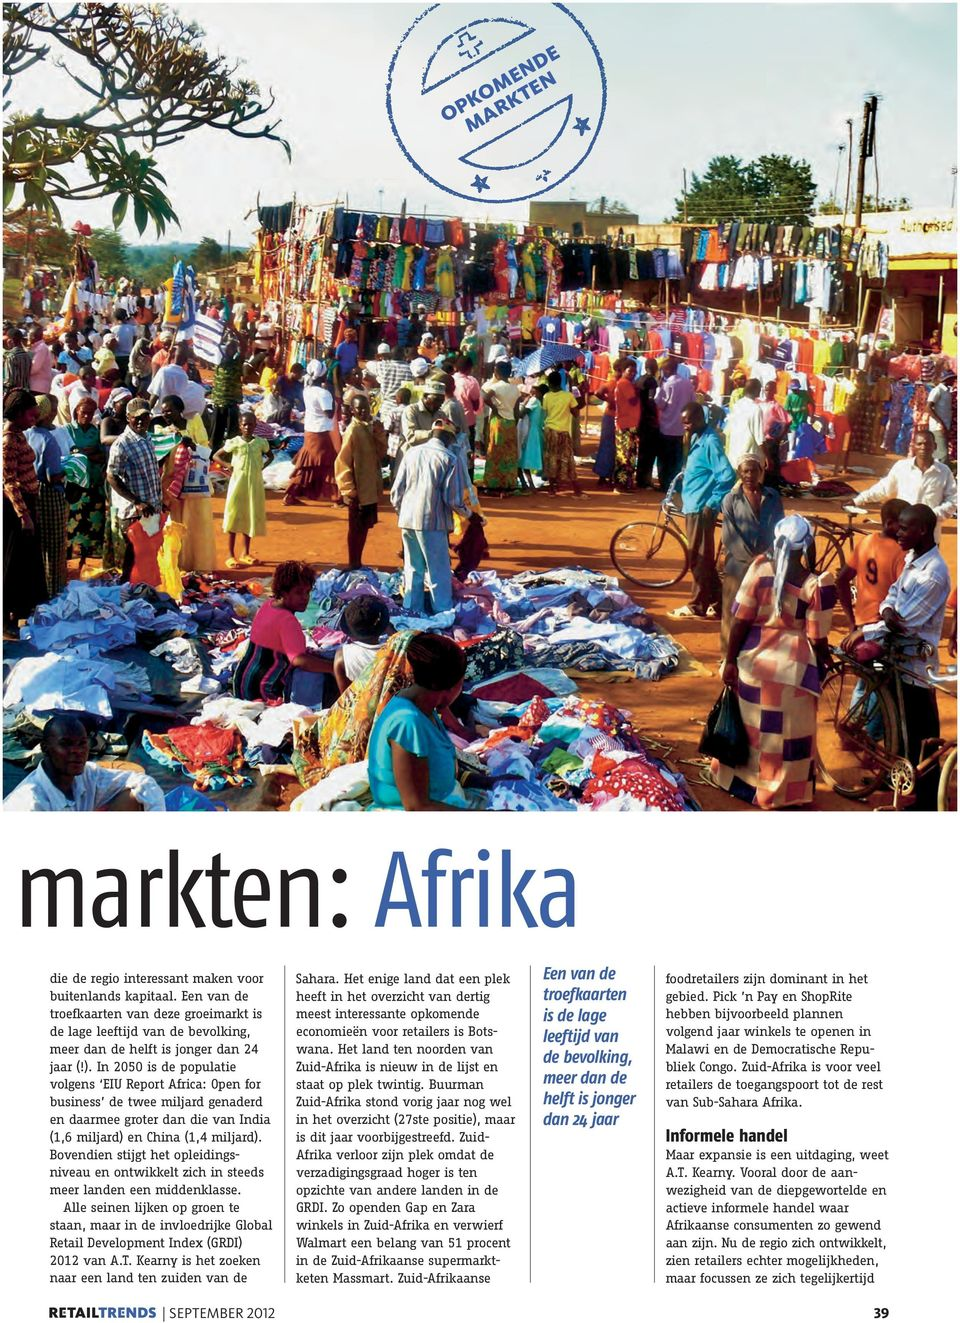 In 2050 is de populatie volgens EIU Report Africa: Open for business de twee miljard genaderd en daarmee groter dan die van India (1,6 miljard) en China (1,4 miljard).